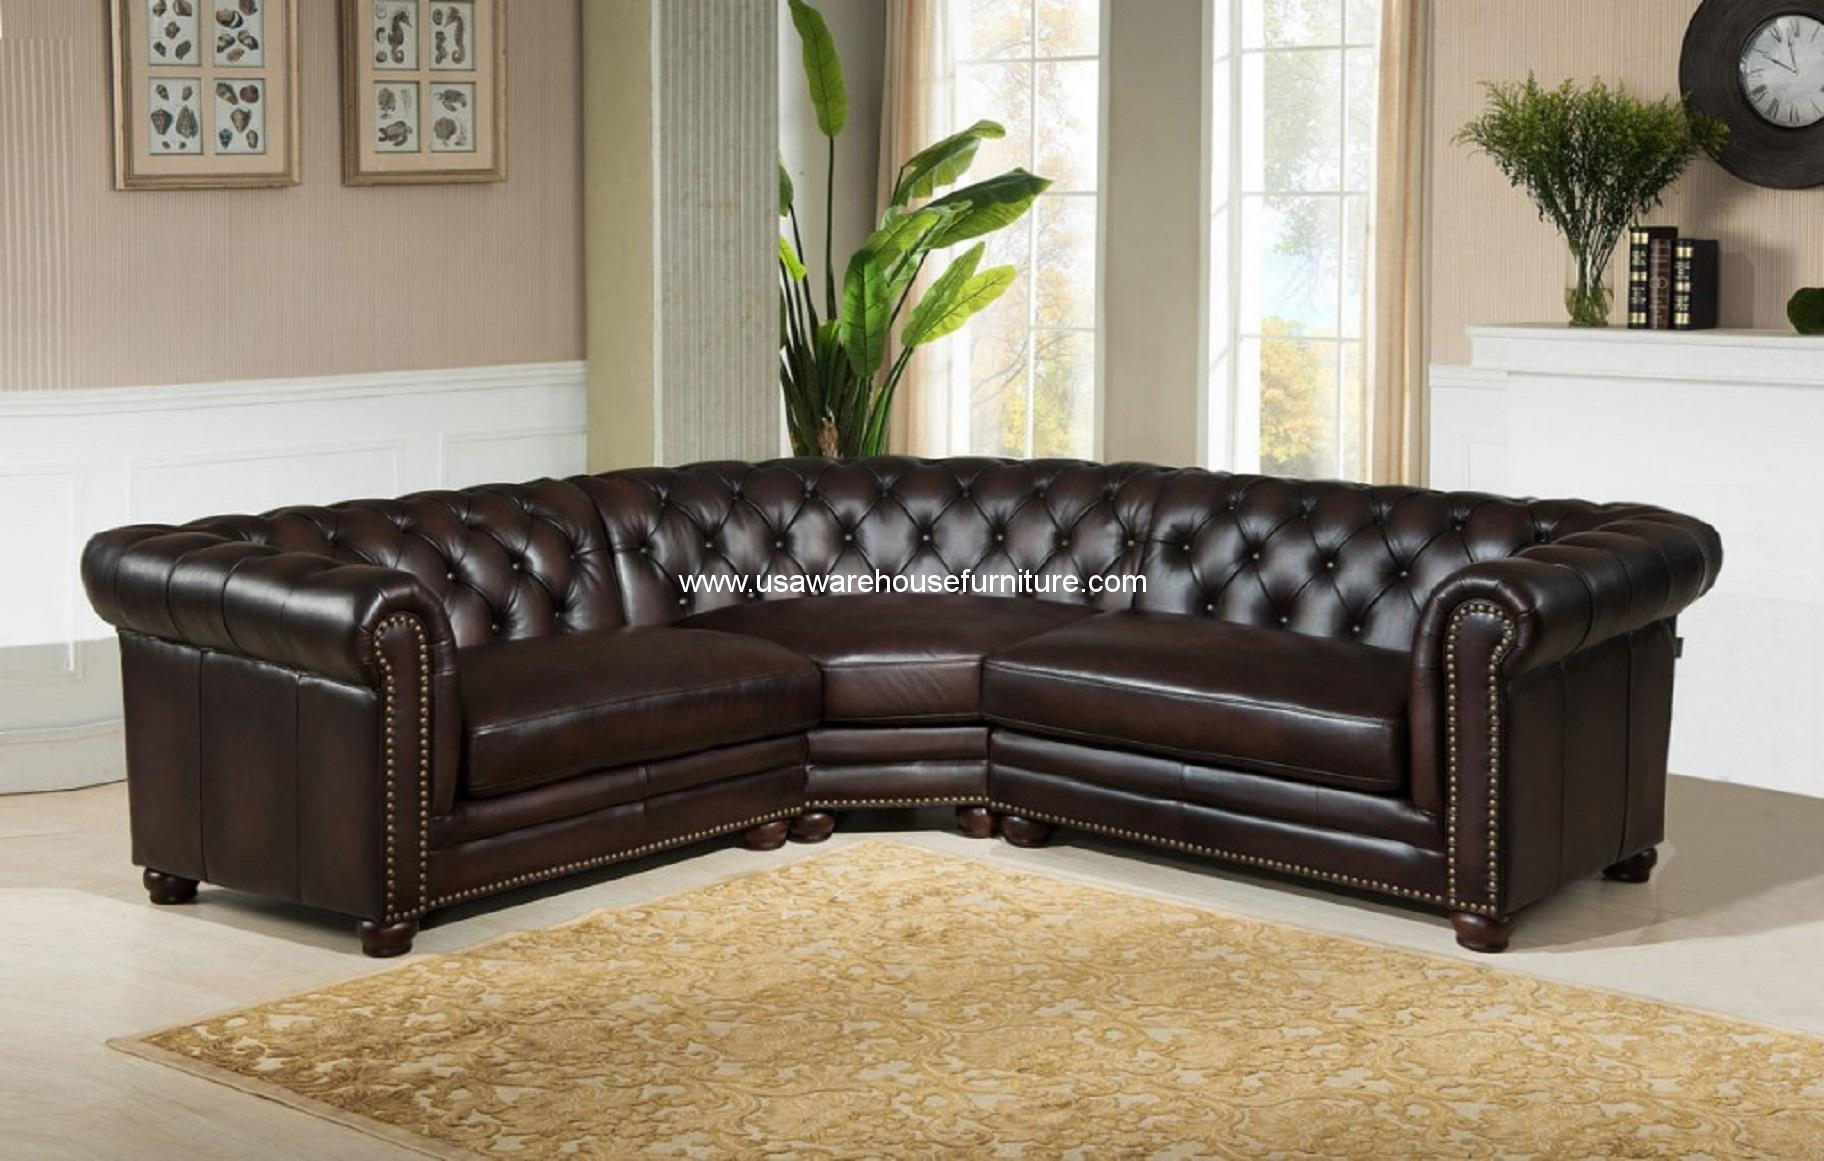 Fantastic 3 Piece Kennedy Dark Brown Tufted 100 Leather Sectional Set Ncnpc Chair Design For Home Ncnpcorg